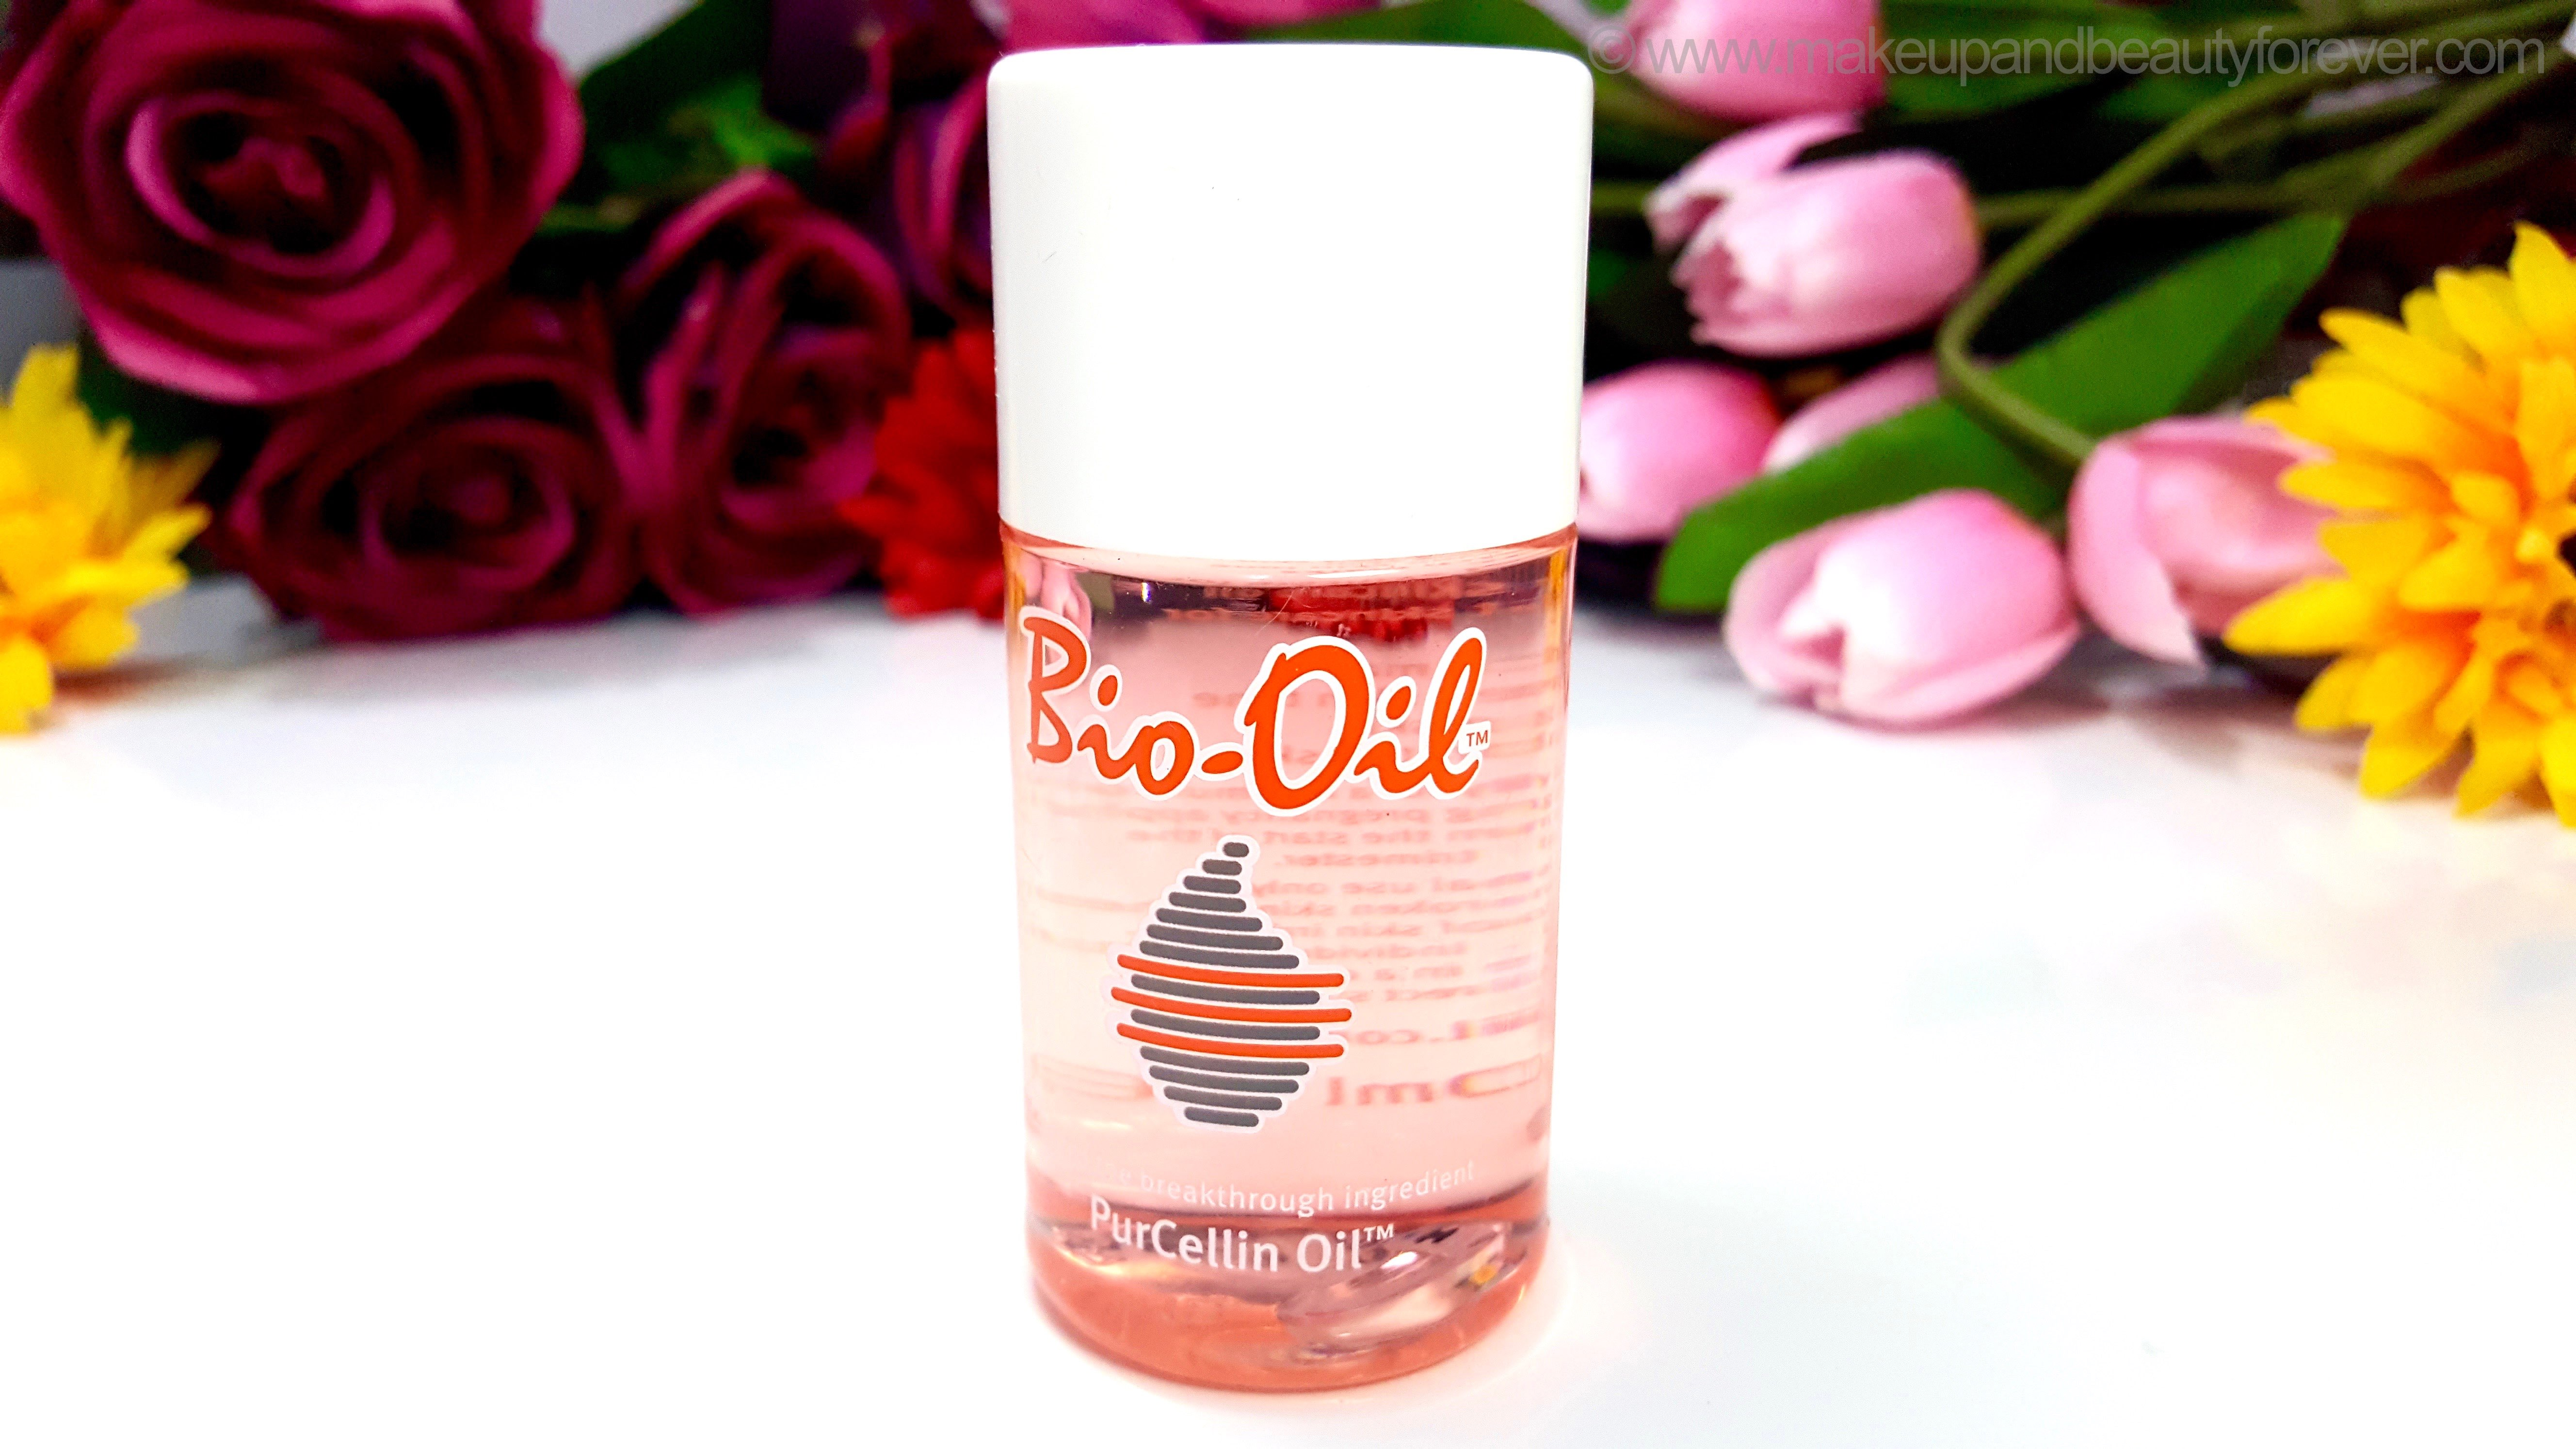 Bio Oil Multiuse Skincare Oil Review Ingredients Effects